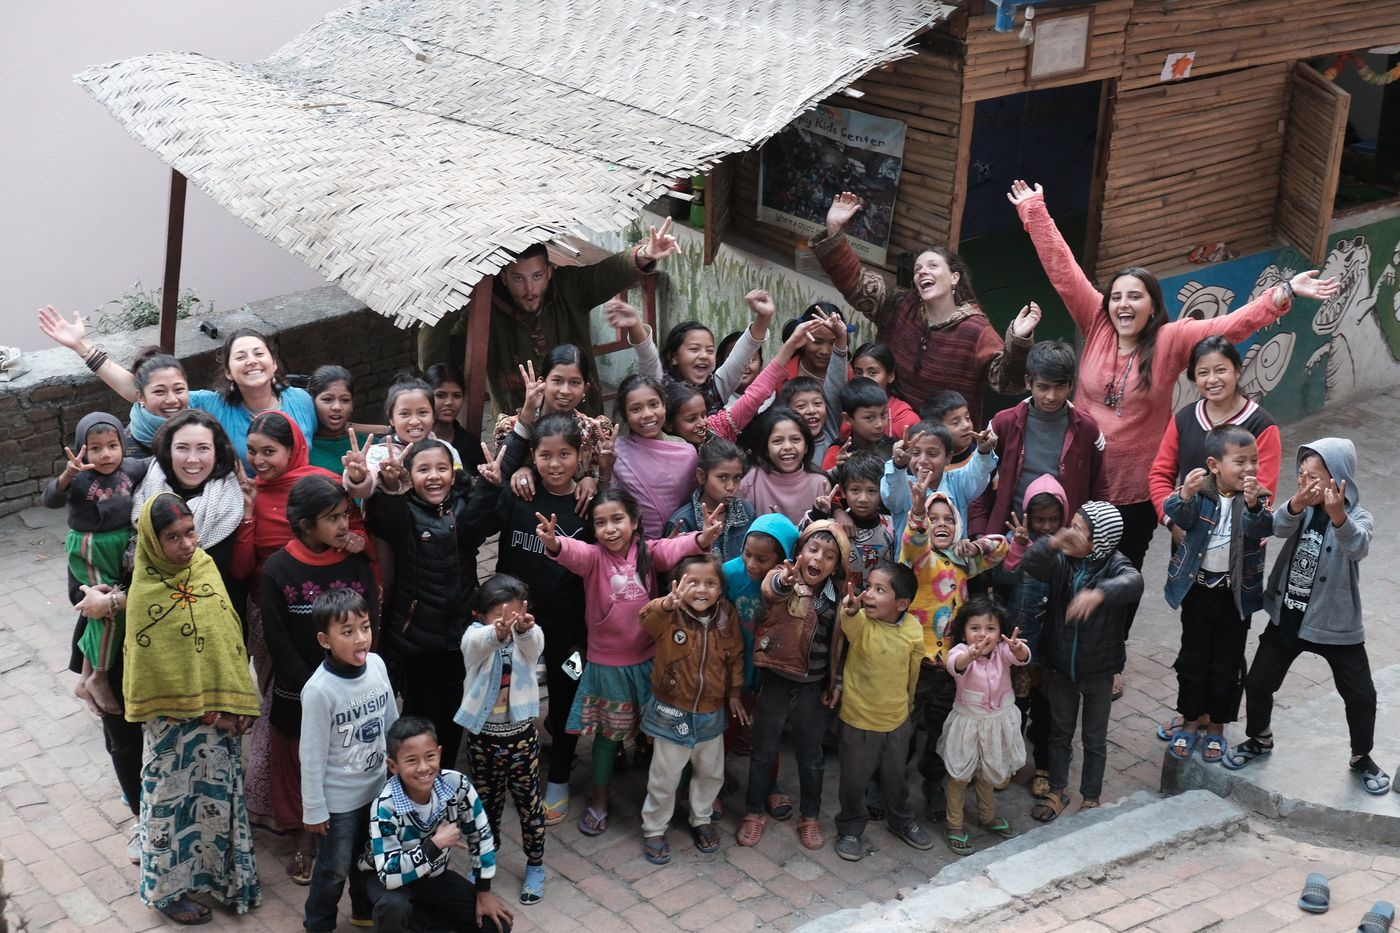 In 2018, the Happy Kids Center underwent major renovations and beautification at the hands of several of the center's volunteers, pictured here with the children.This photo was taken just before the project began, as a remembrance of the original center.